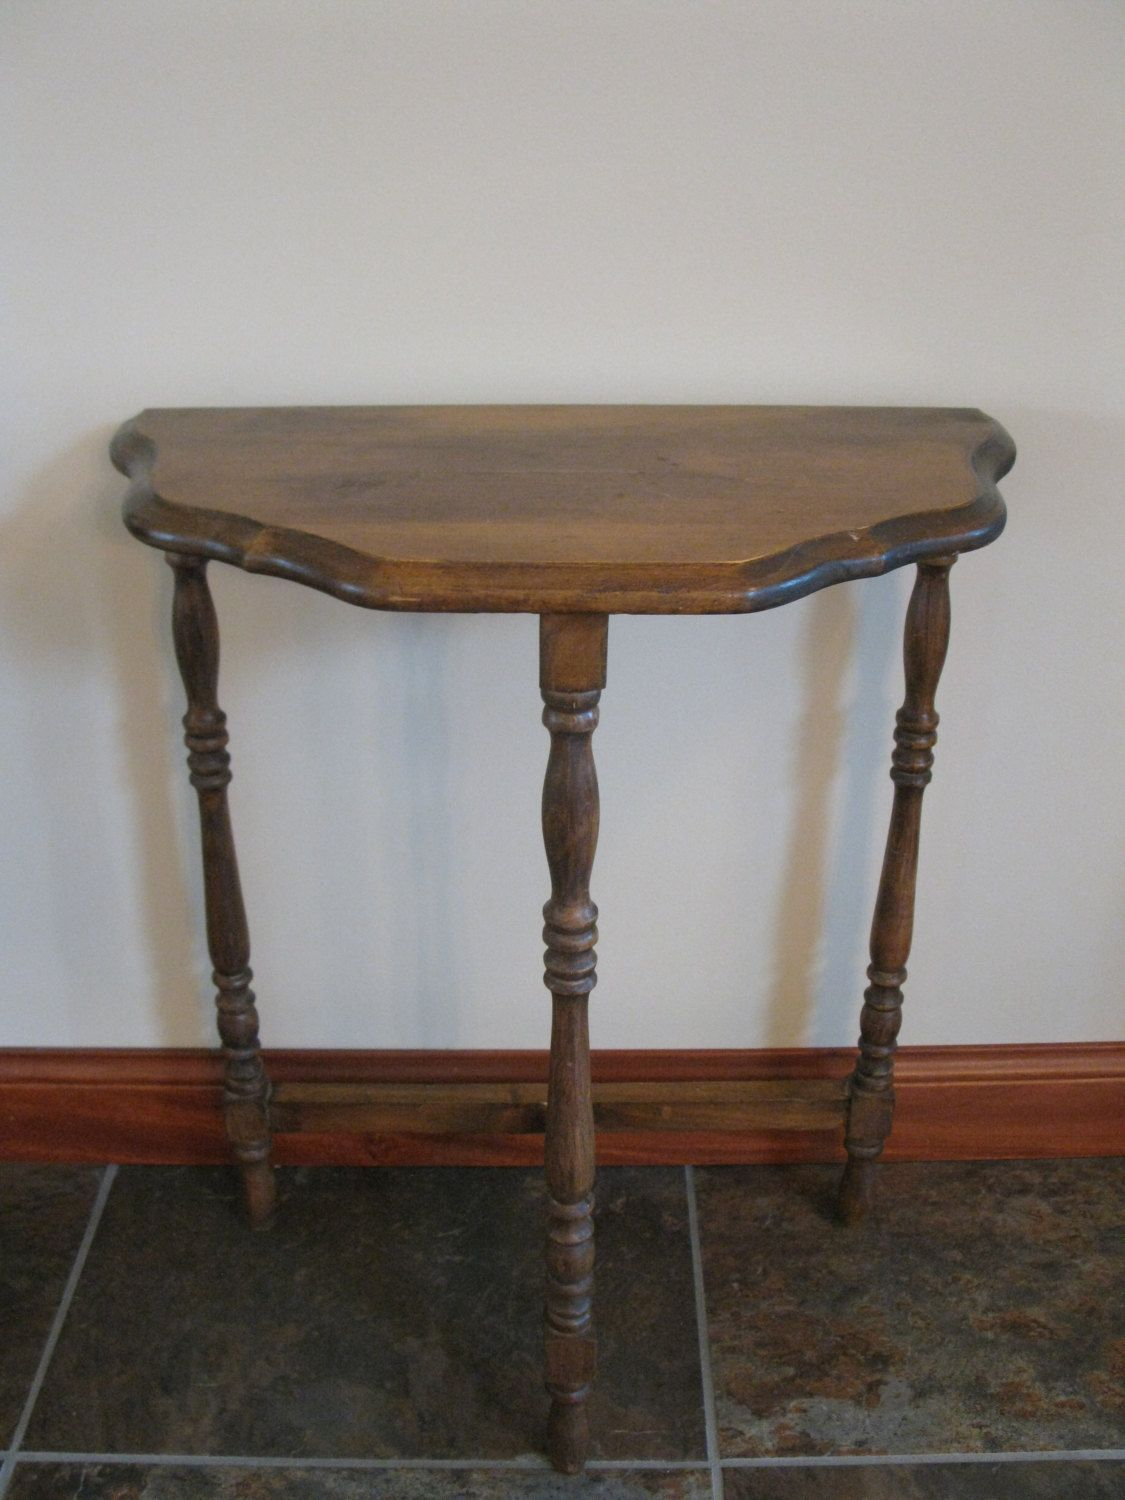 Vintage Half Moon side table - 3 legged table - small wood table ...